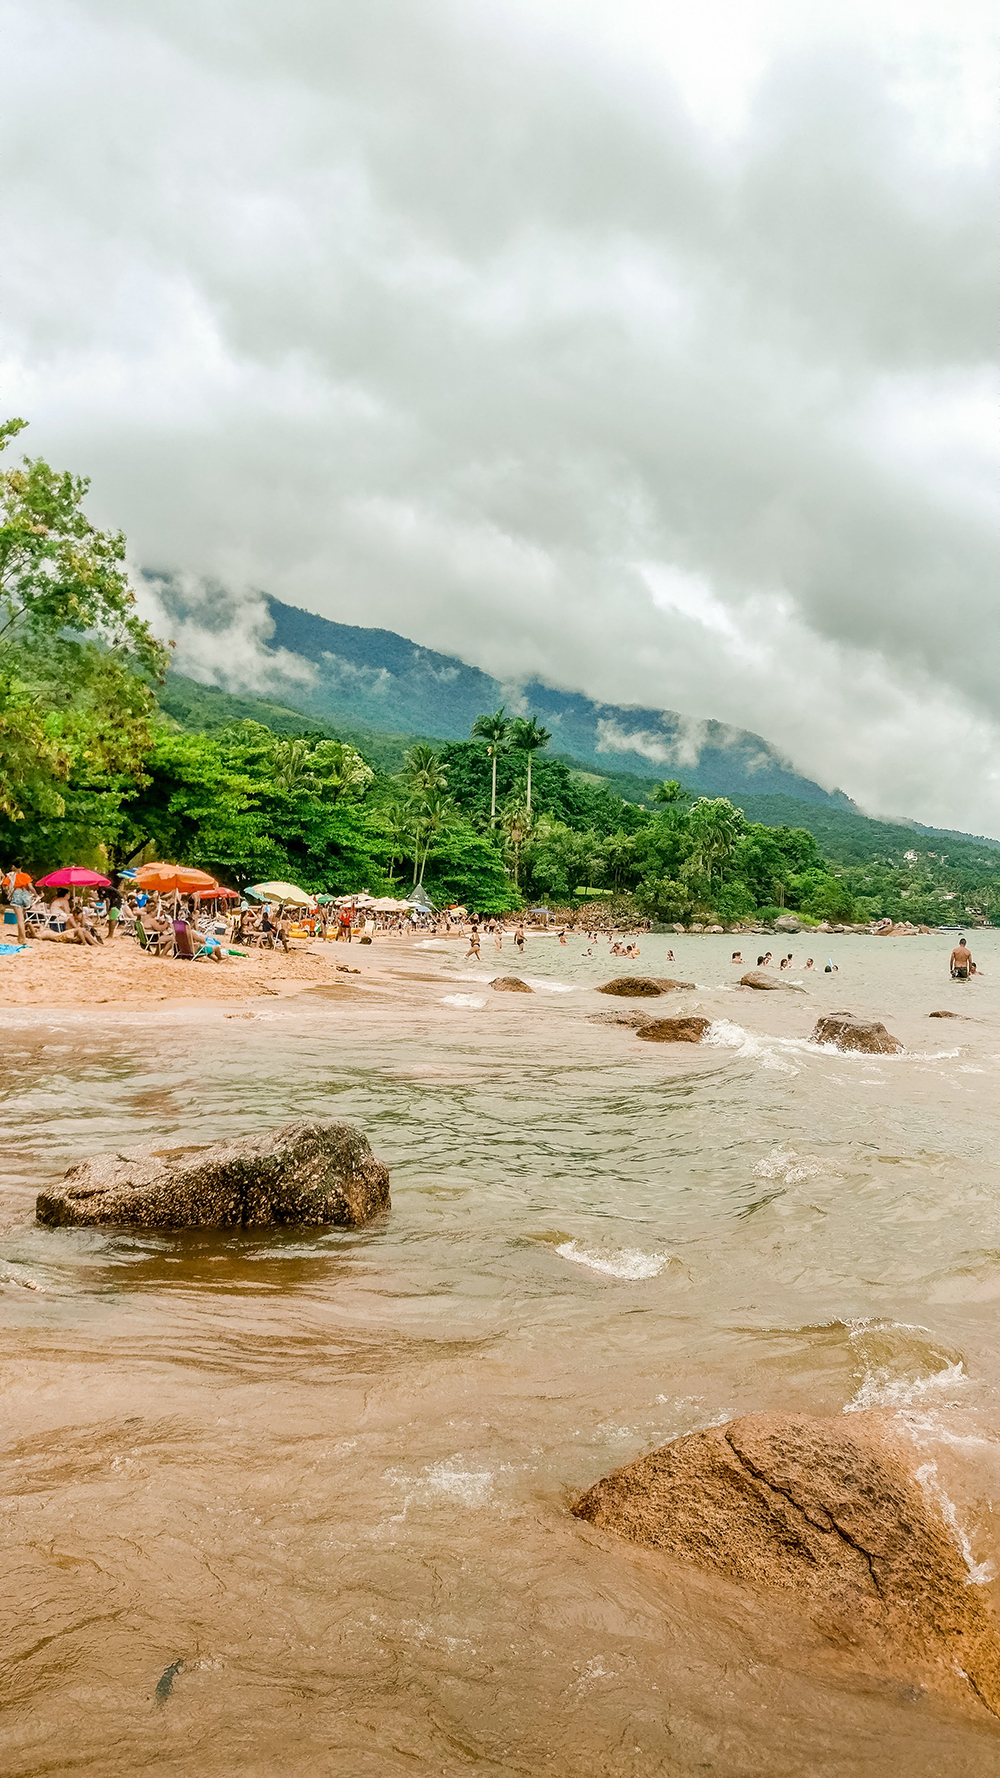 Praia do Julião - Ilhabela travel guide - what to do and where to go | Aliz's Wonderland